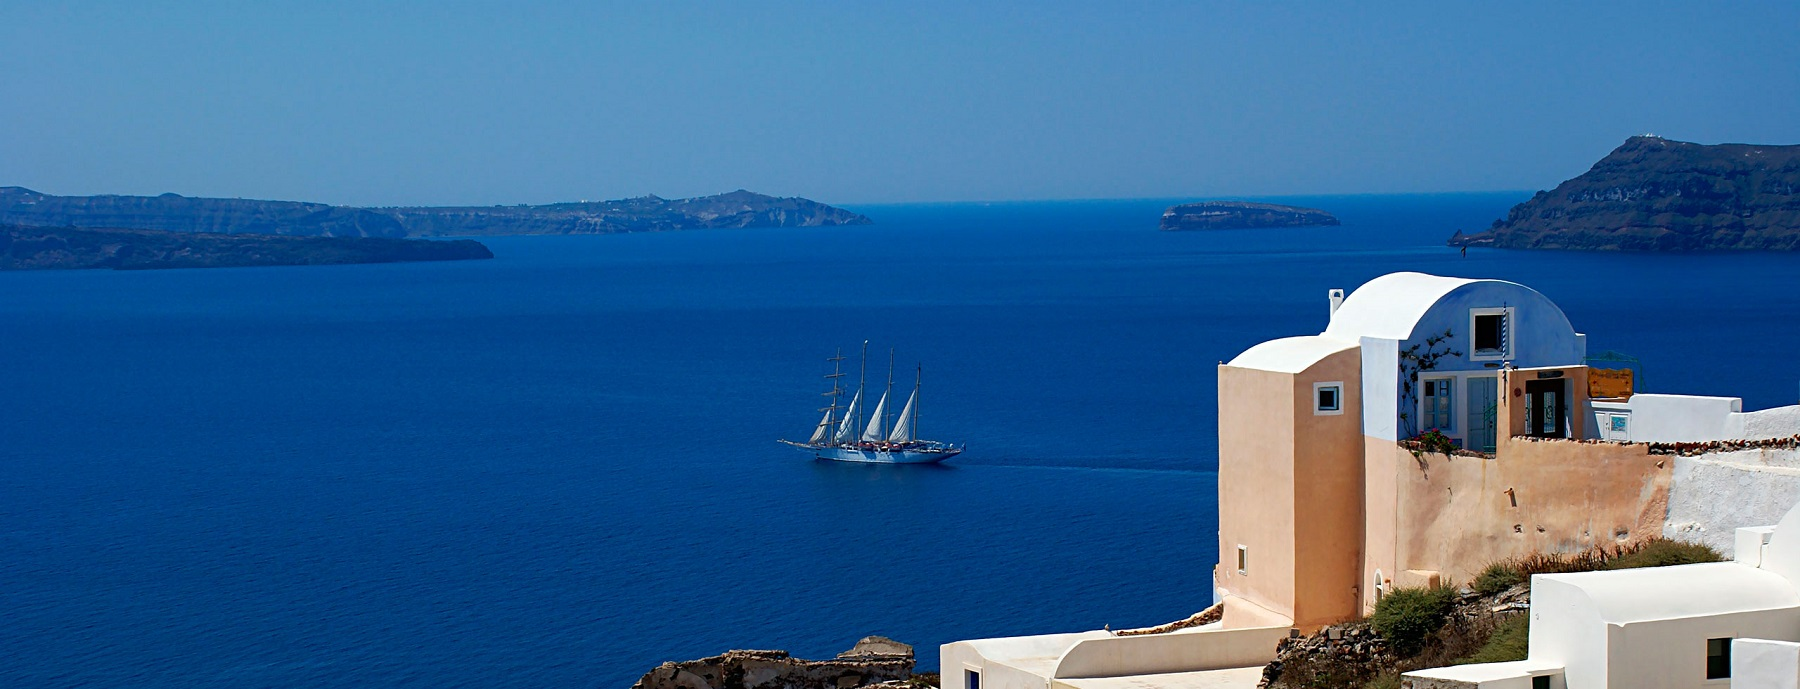 Wedding Events & Cruises in Greece